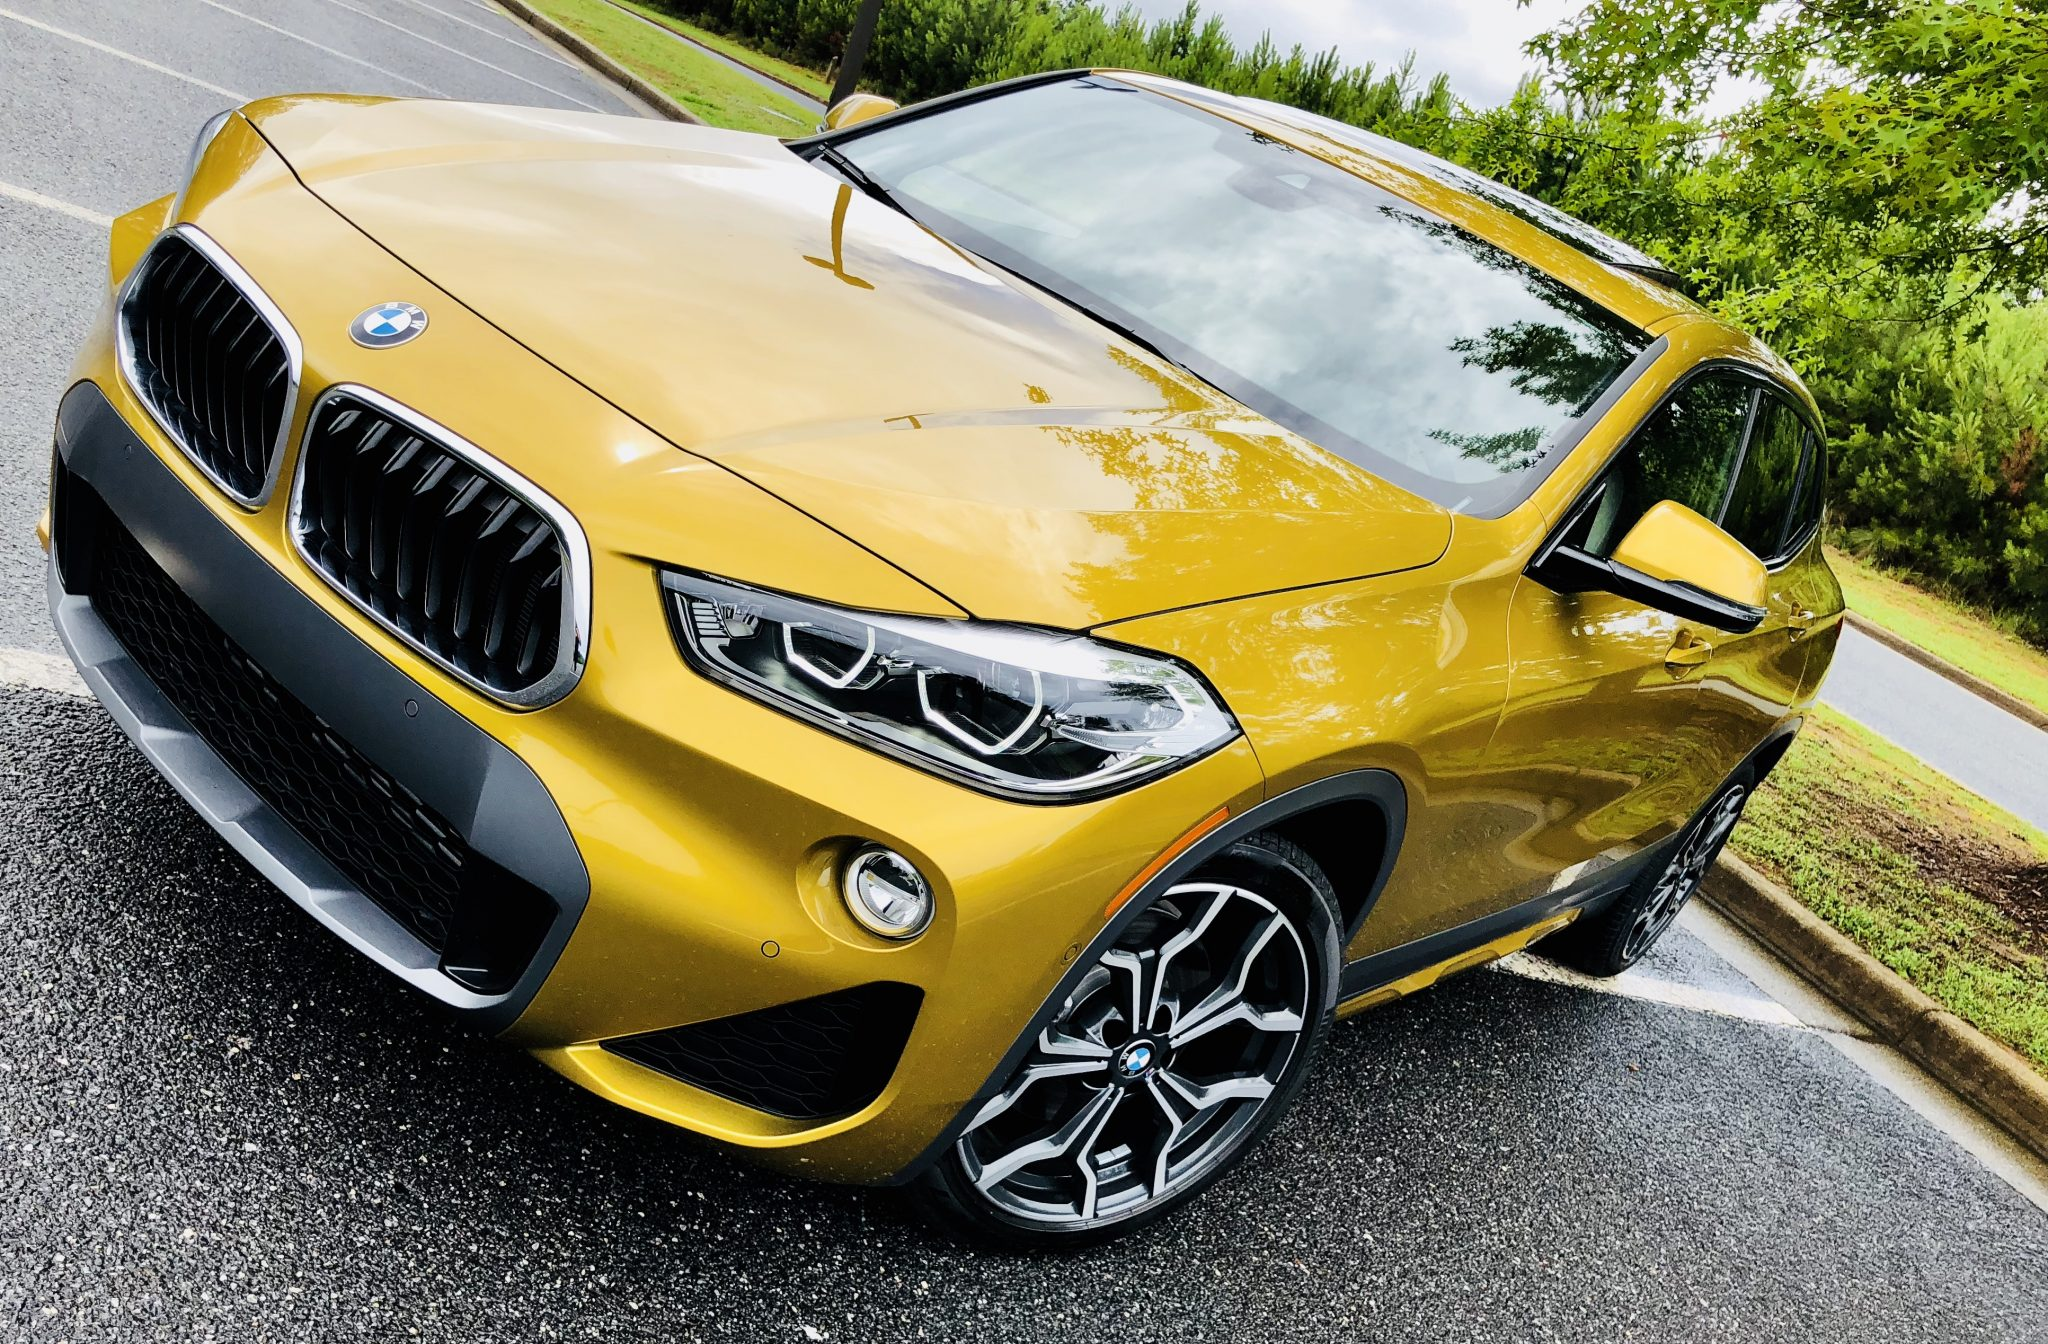 Five Things I Loved About The BMW X2